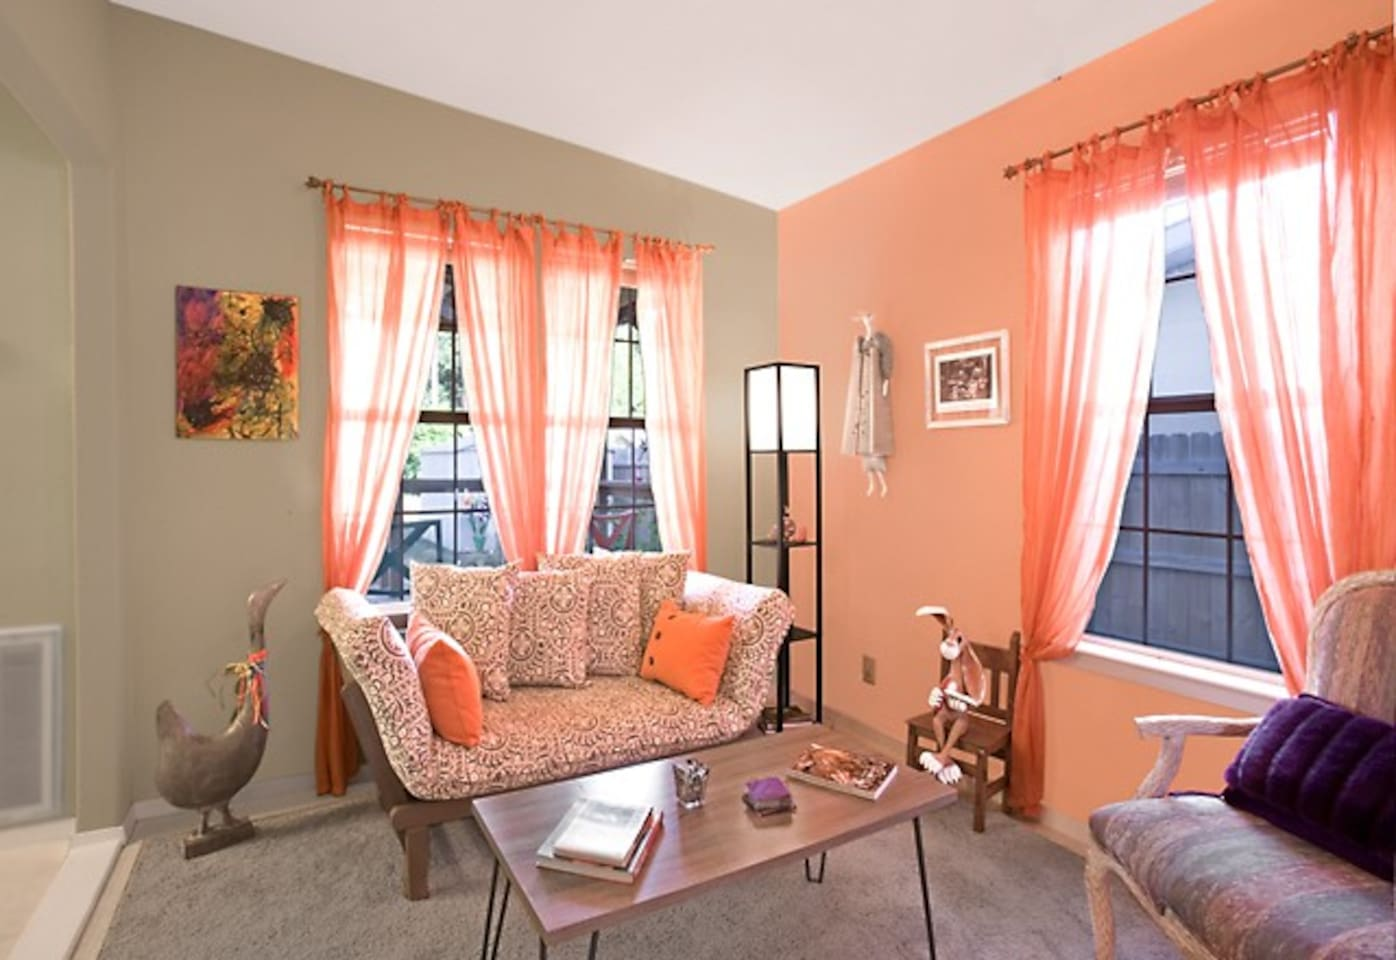 Original art and bright colors decorate the Living Room